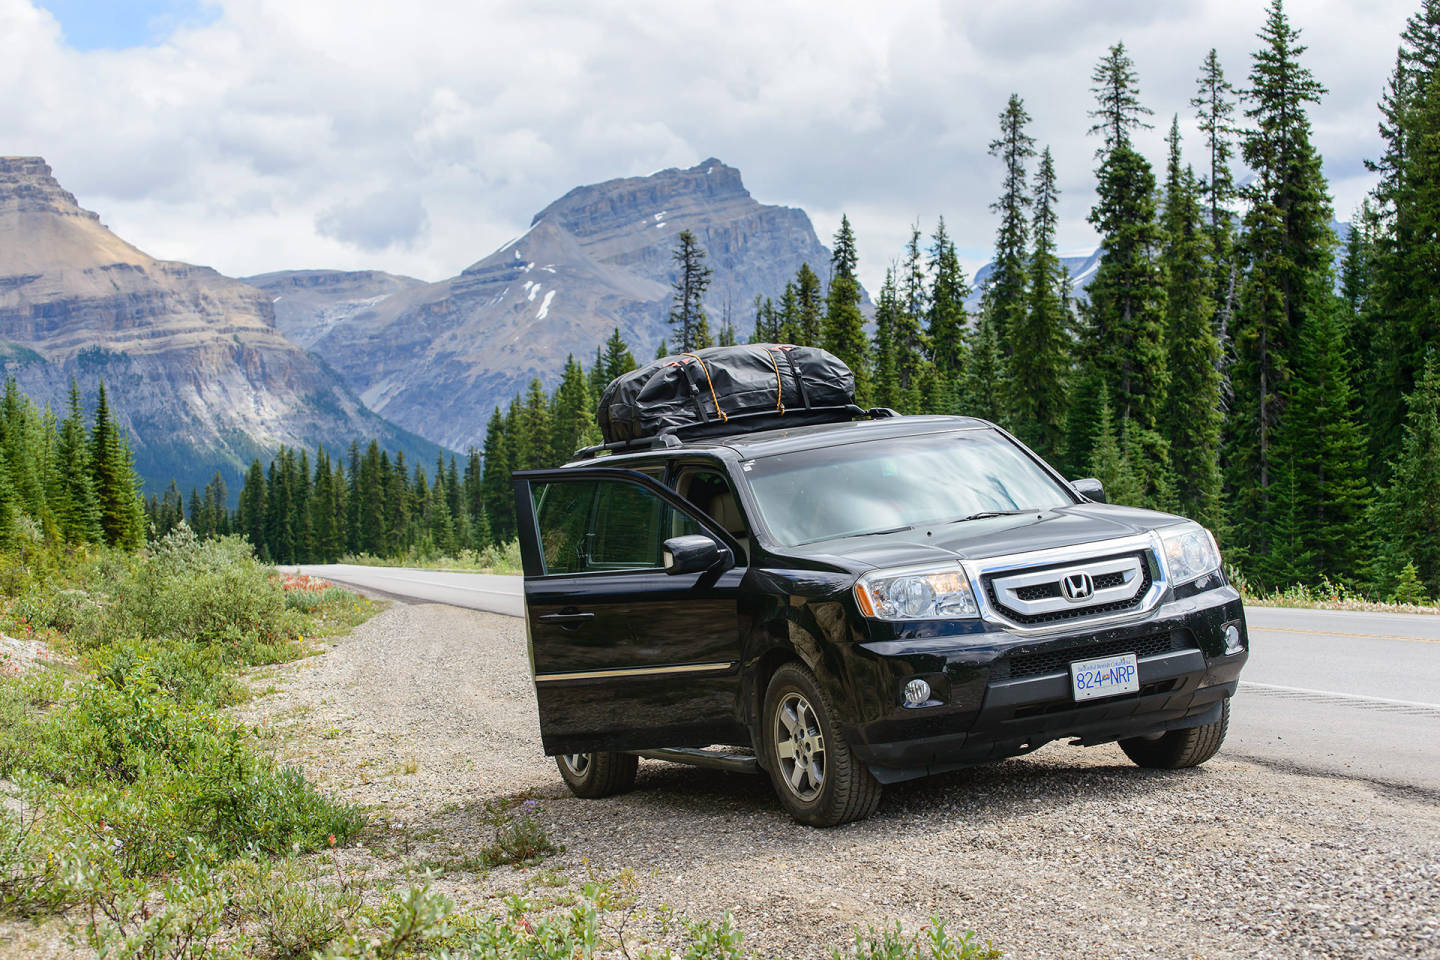 2009 Honda Pilot in Banff National Park